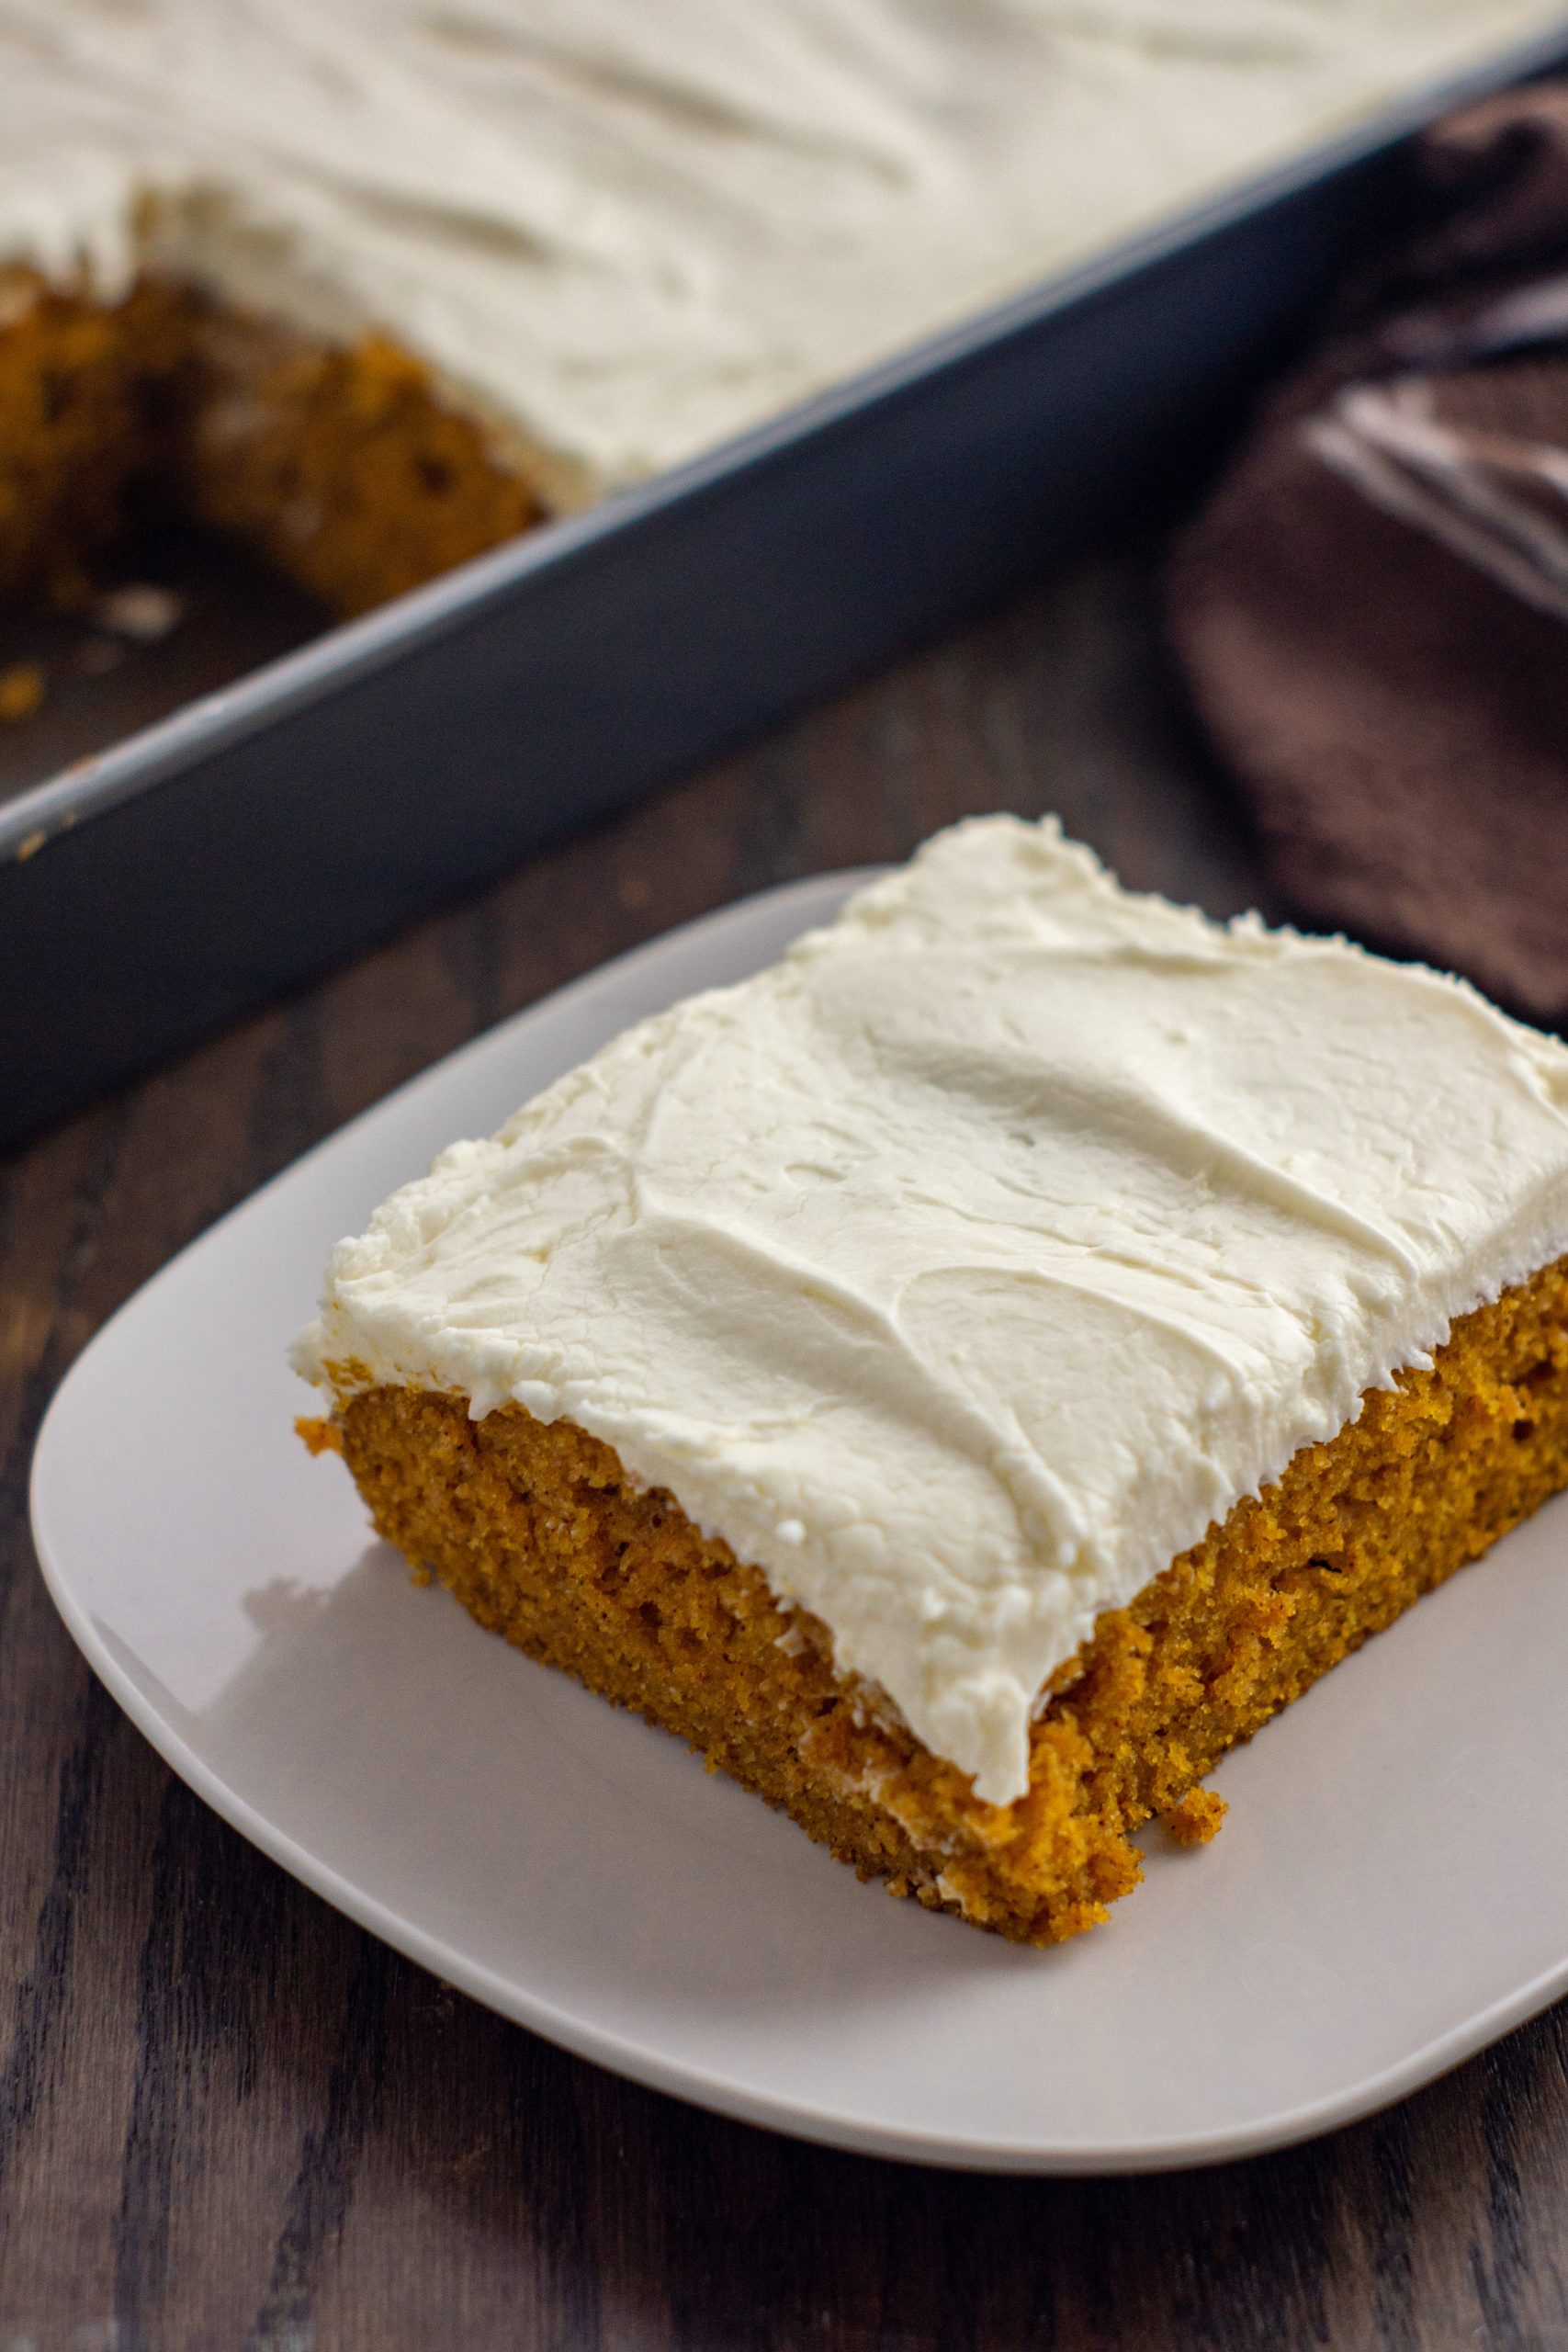 Calling all Pumpkin lovers! You're going to love this recipe for pumpkin cake with cream cheese frosting. This pumpkin spice cake with a homemade cream cheese frosting has the simplicity of a sheet cake with all the yummy flavors of pumpkin spice.